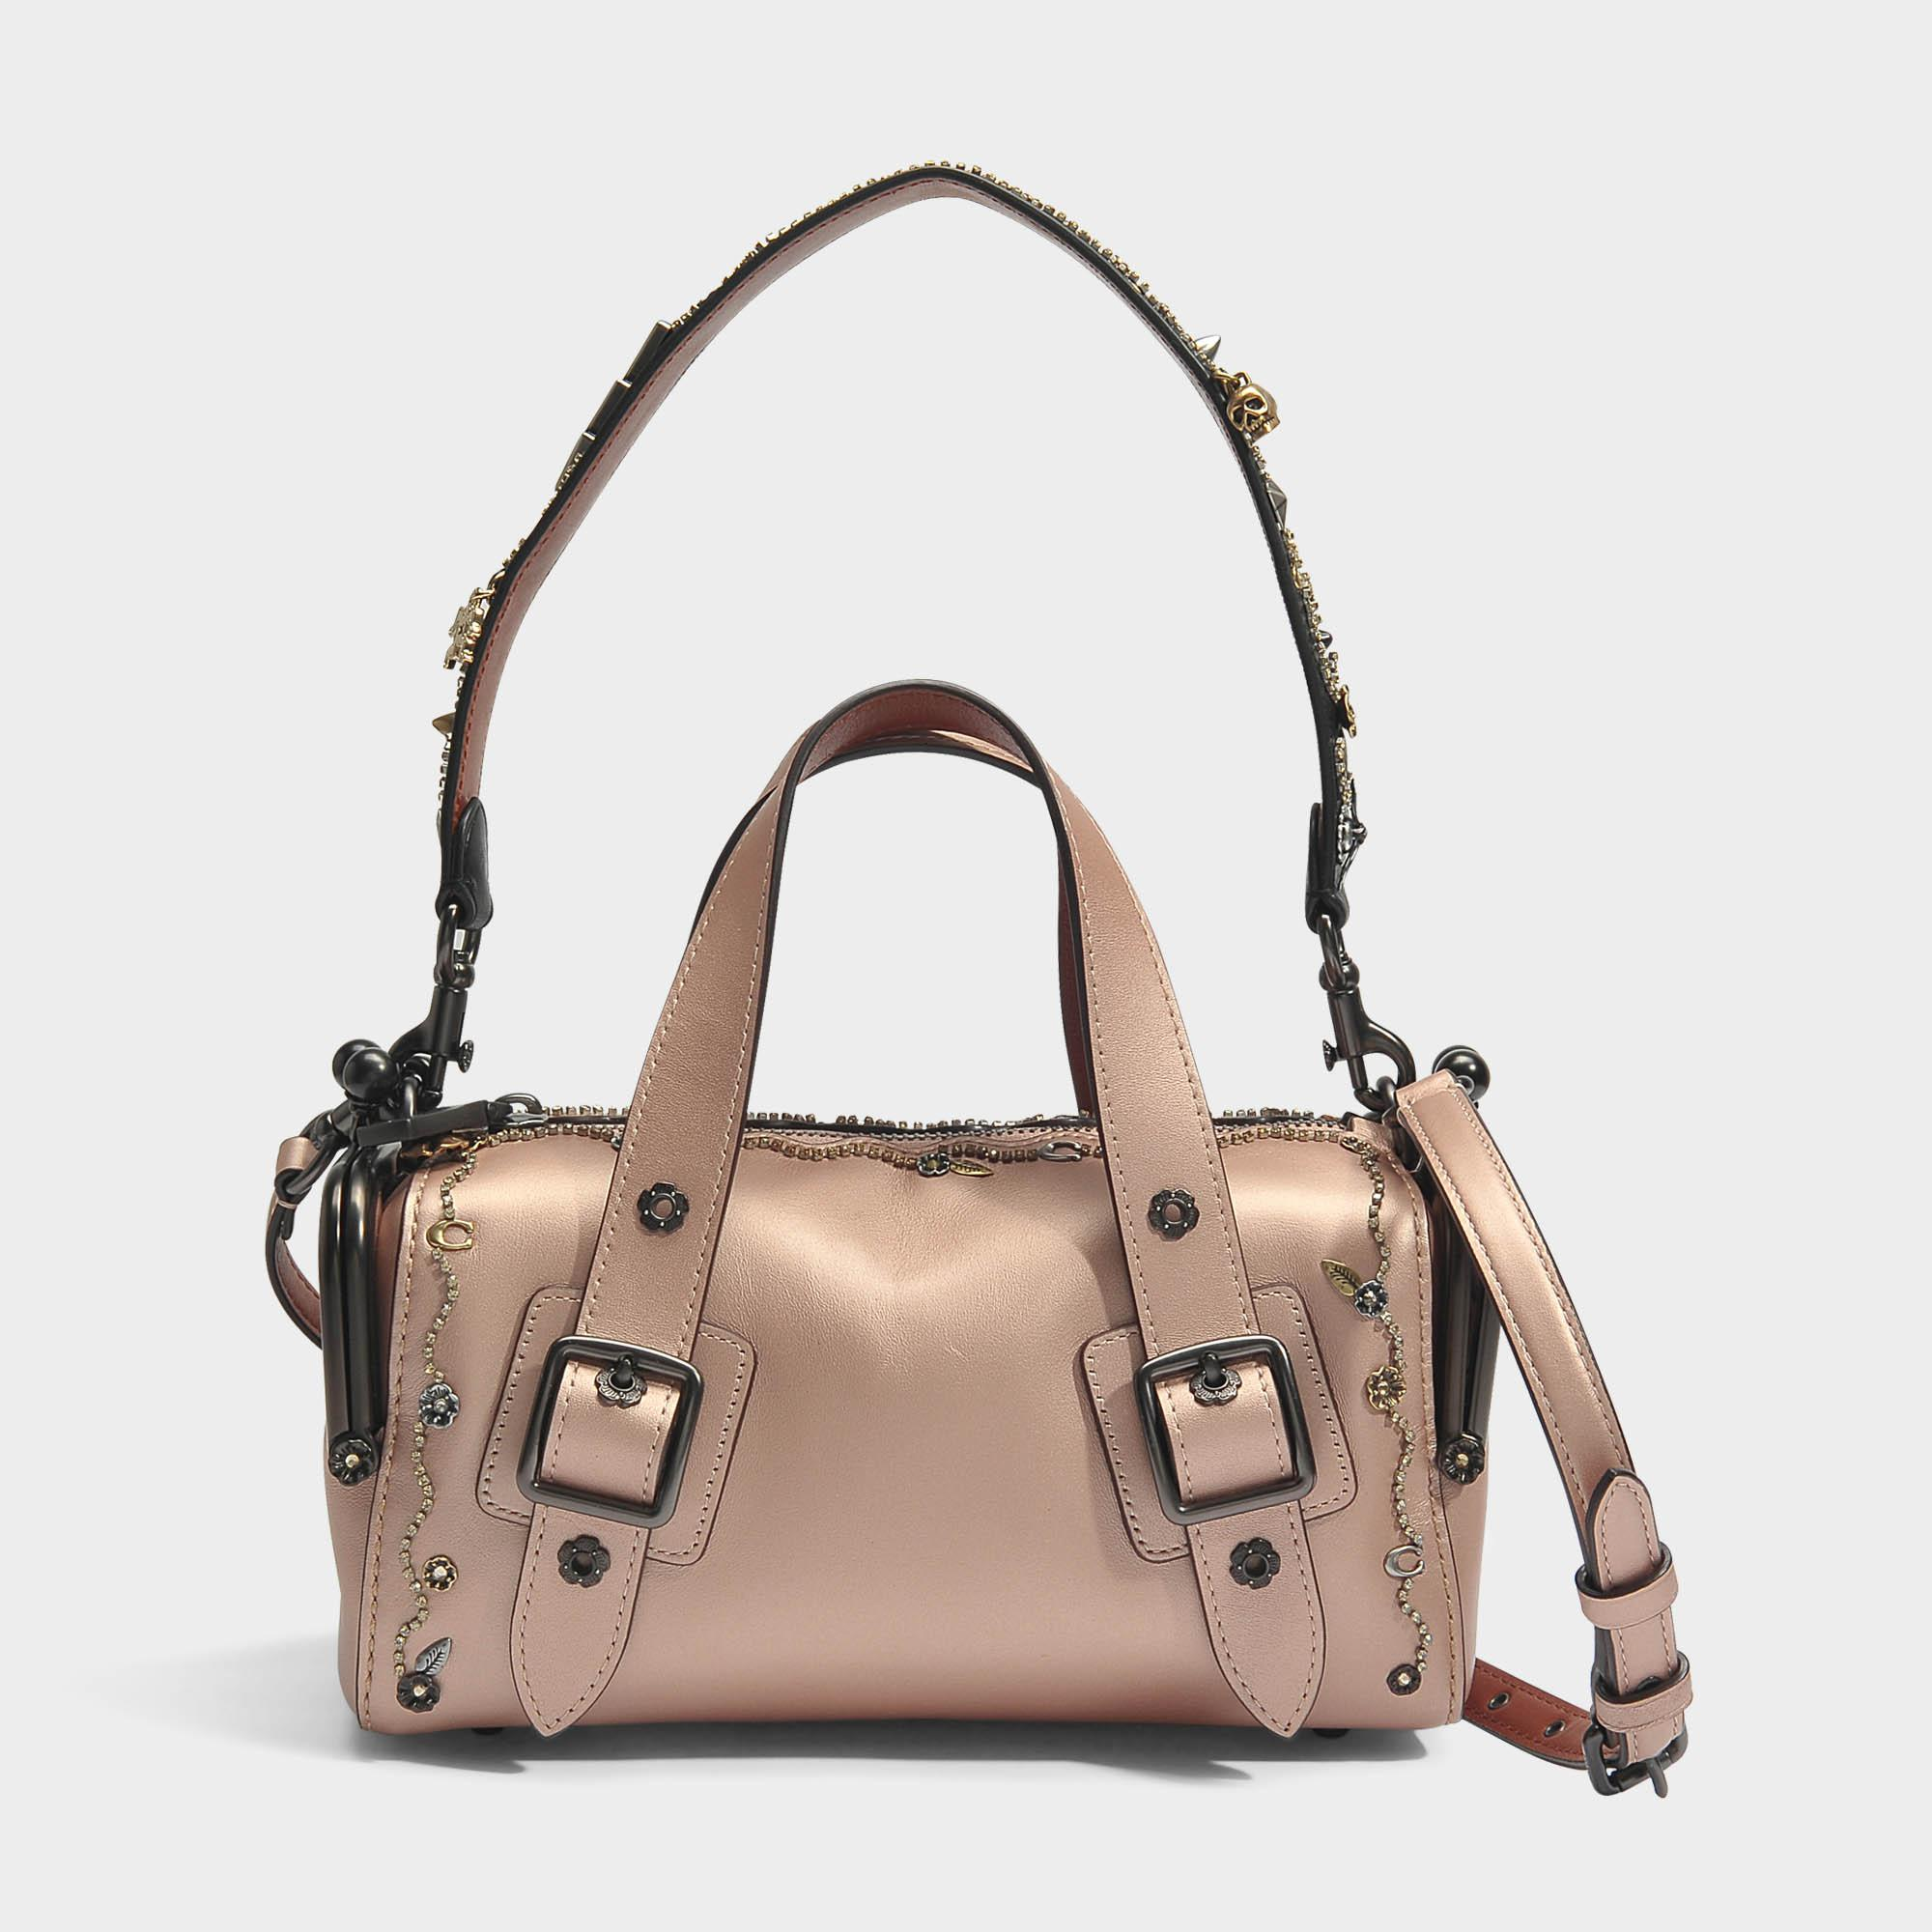 Mailbox Bag 24 in Rose Gold Grained Leather Coach hAWmmp